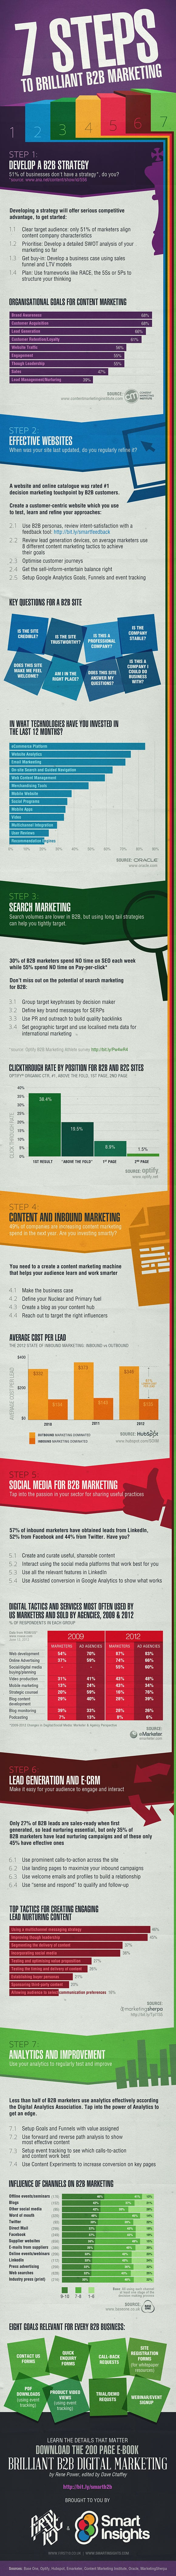 Create Your B2B Marketing Strategy With 7 Steps : infographic